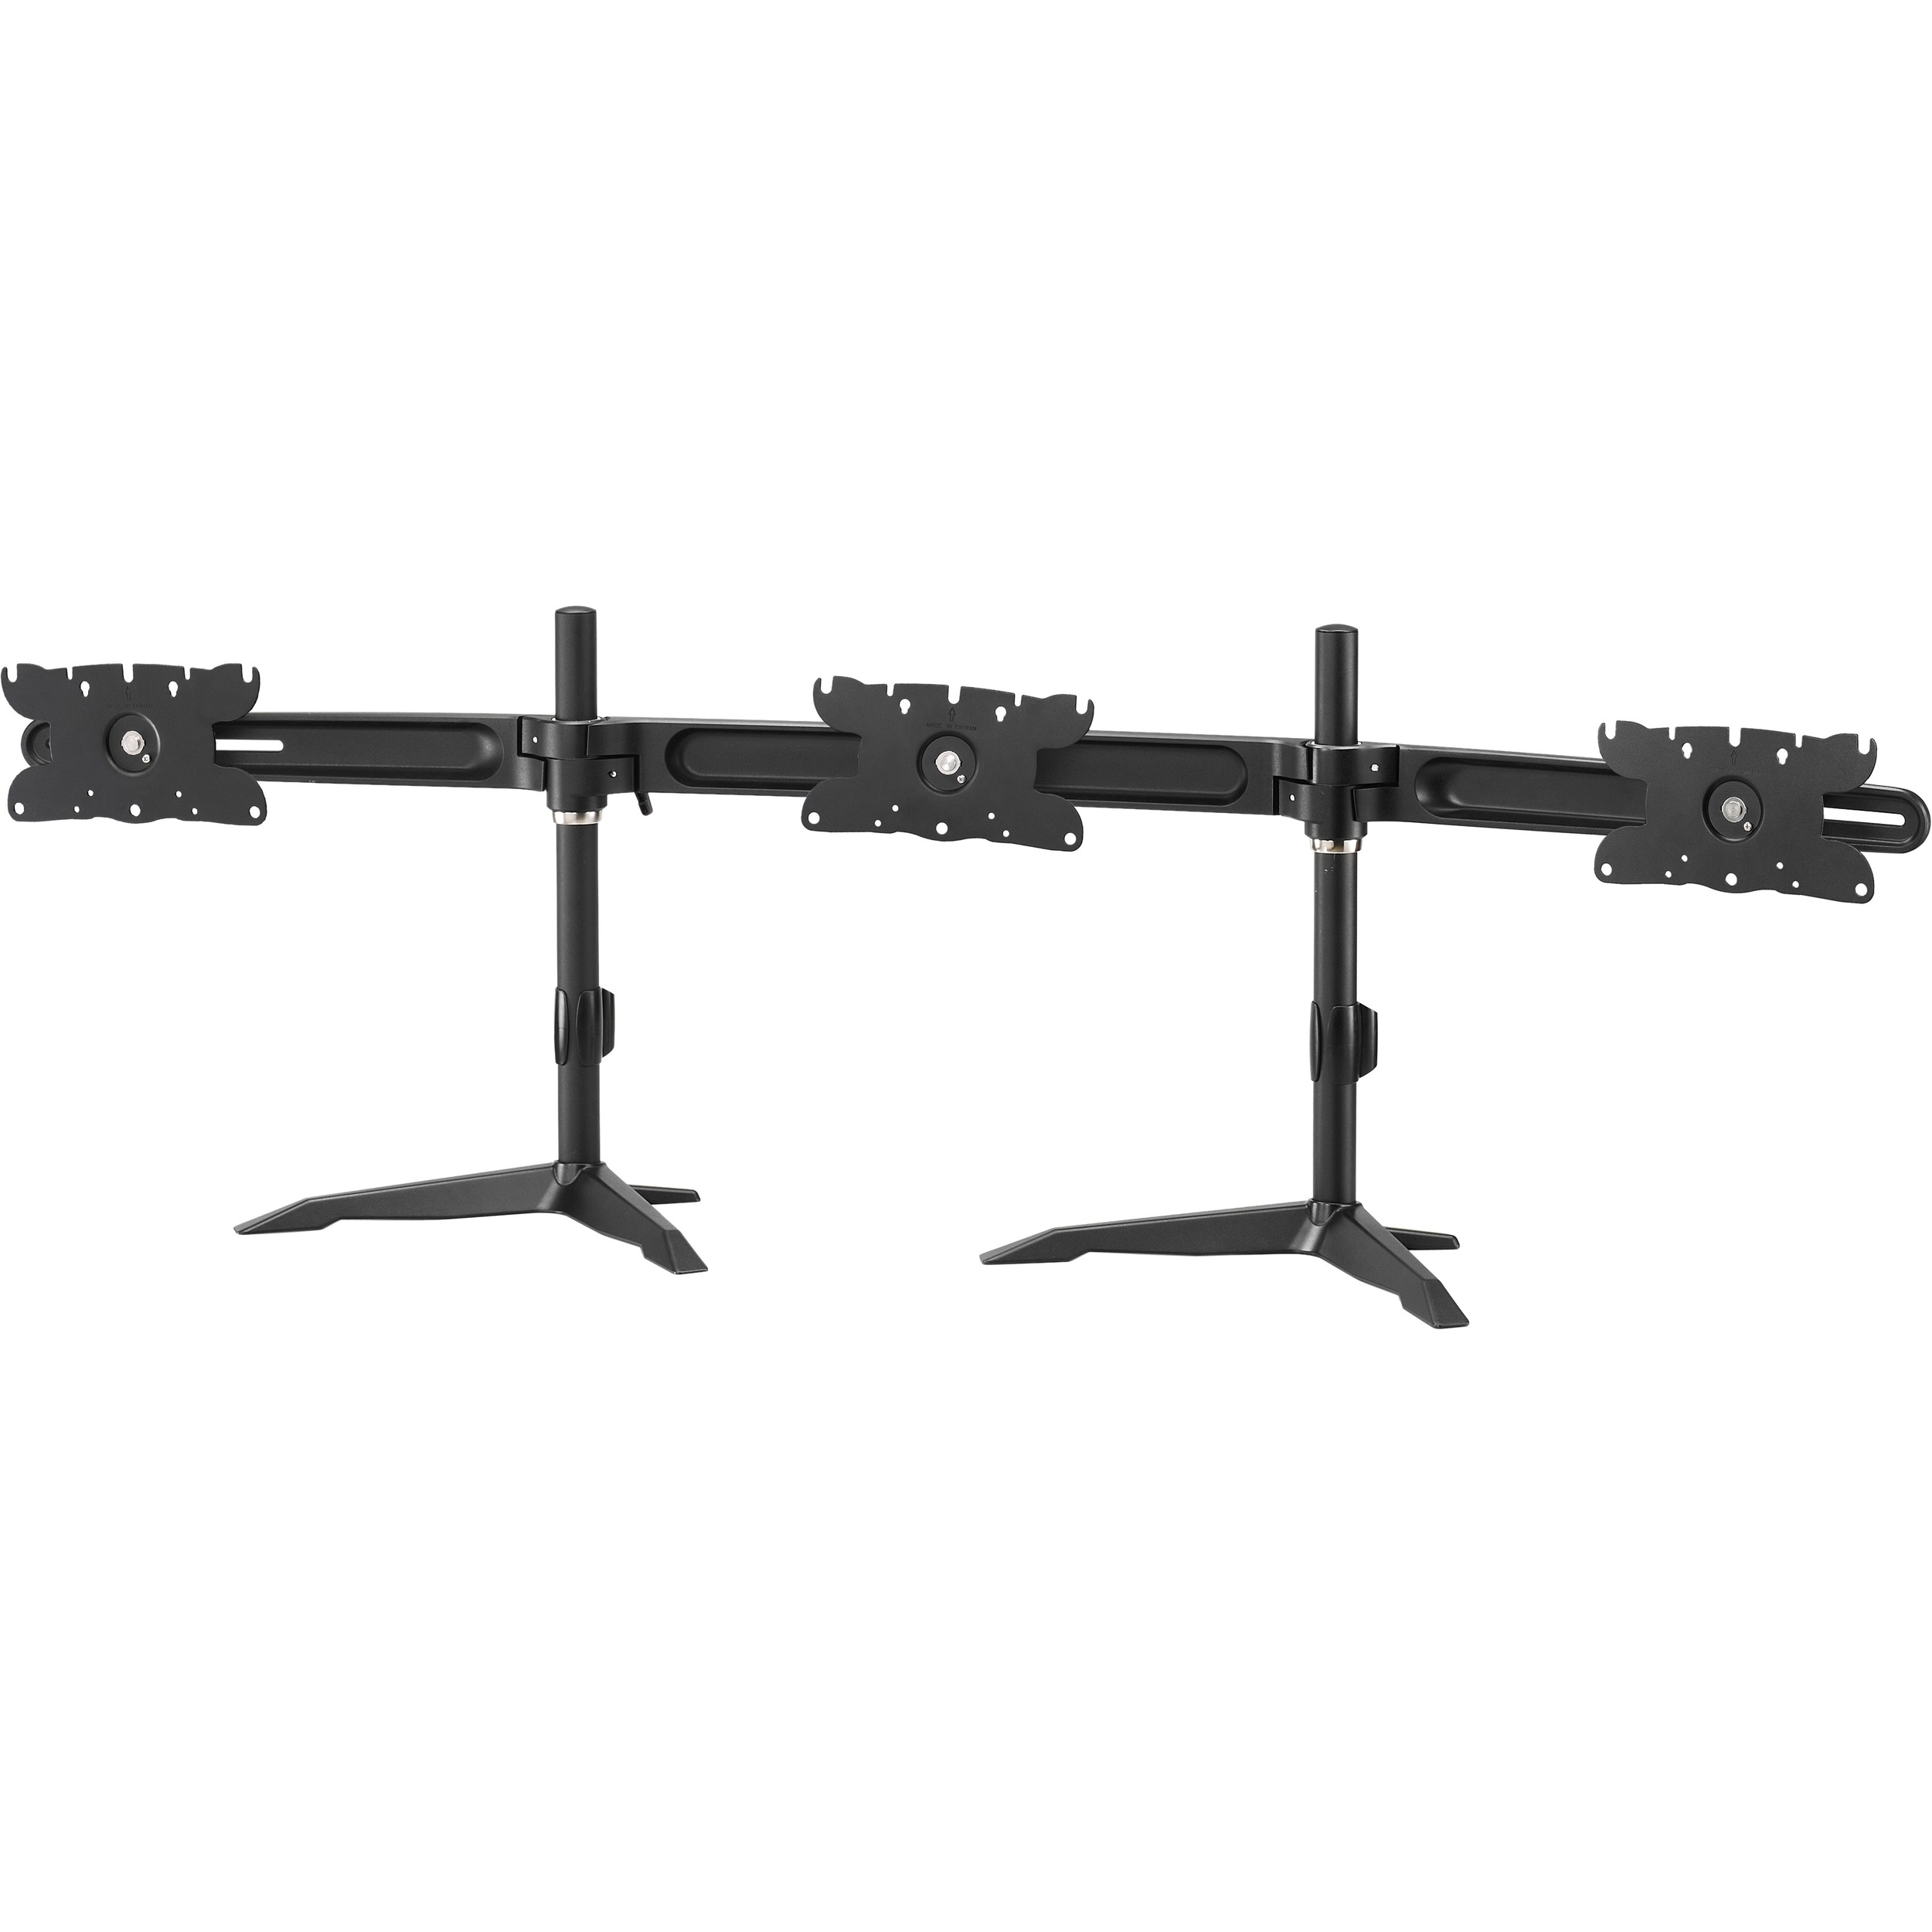 Amer Horizontal Display Stand - Up to 32inch Screen Support